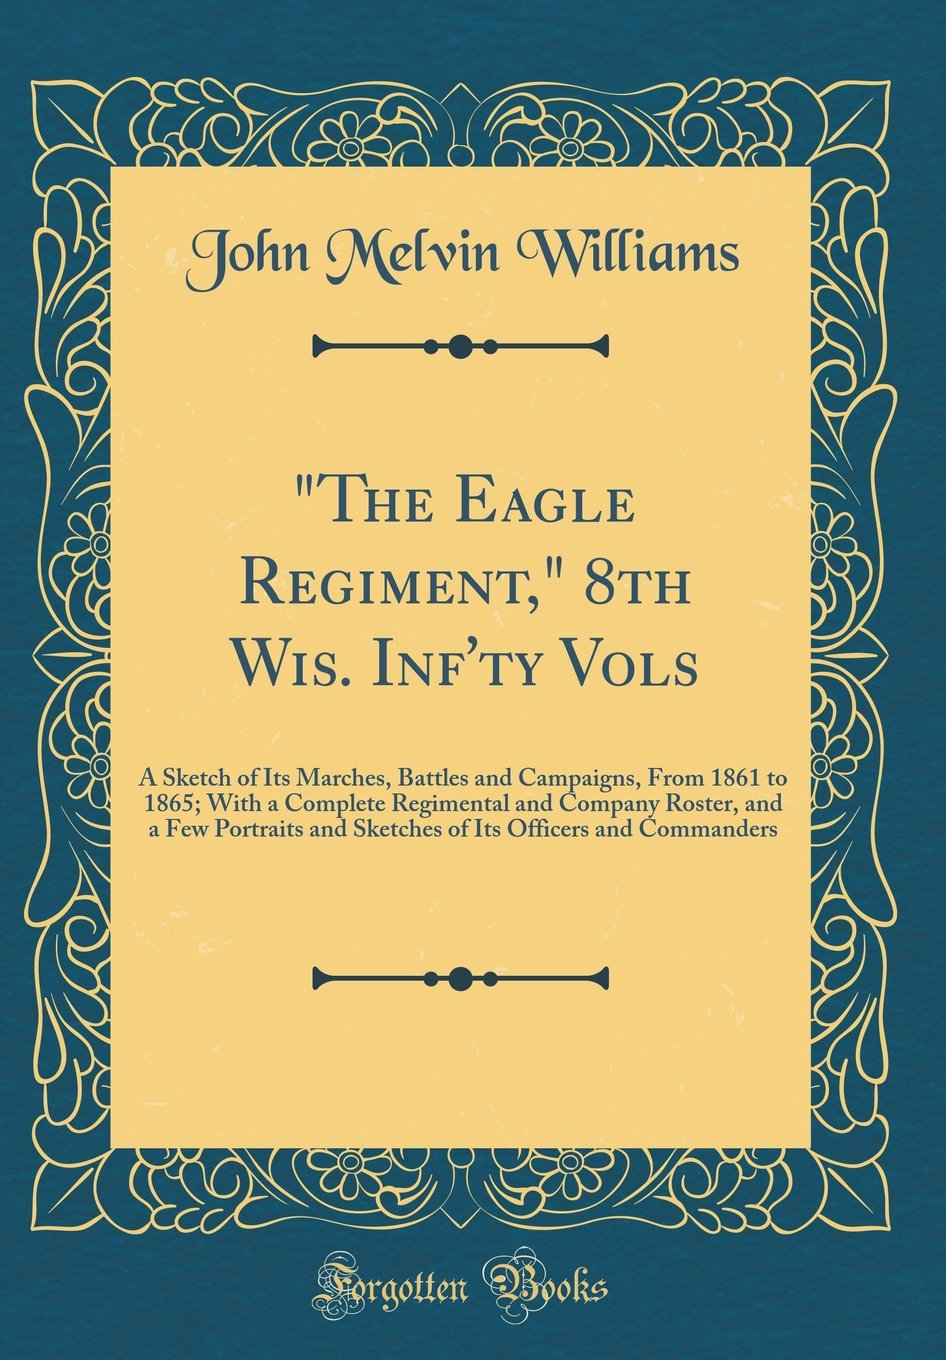 Read Online The Eagle Regiment, 8th Wis. Inf'ty Vols: A Sketch of Its Marches, Battles and Campaigns, from 1861 to 1865; With a Complete Regimental and Company ... Its Officers and Commanders (Classic Reprint) pdf